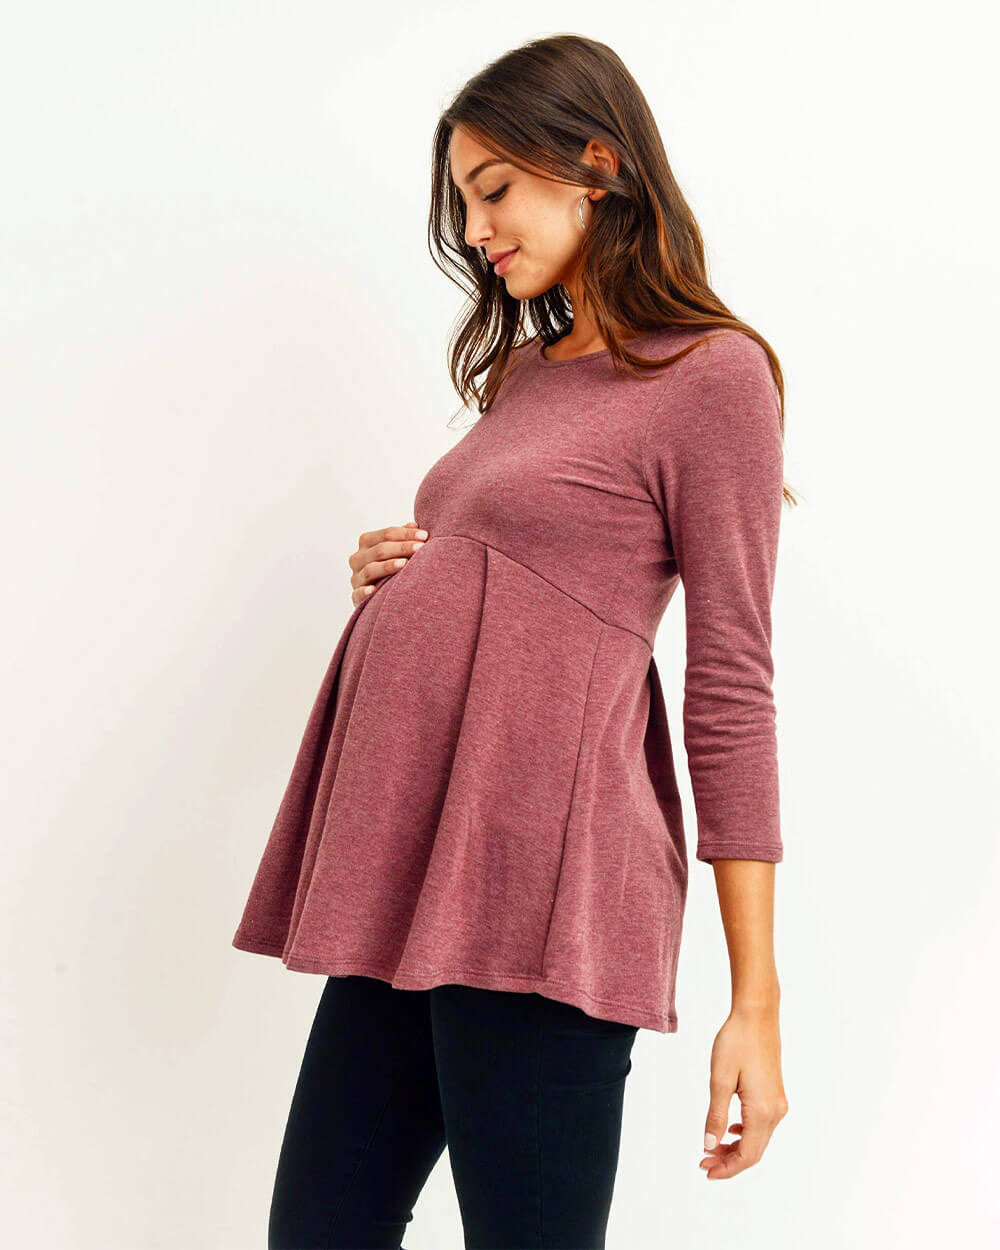 Dress Barn cheap maternity clothes